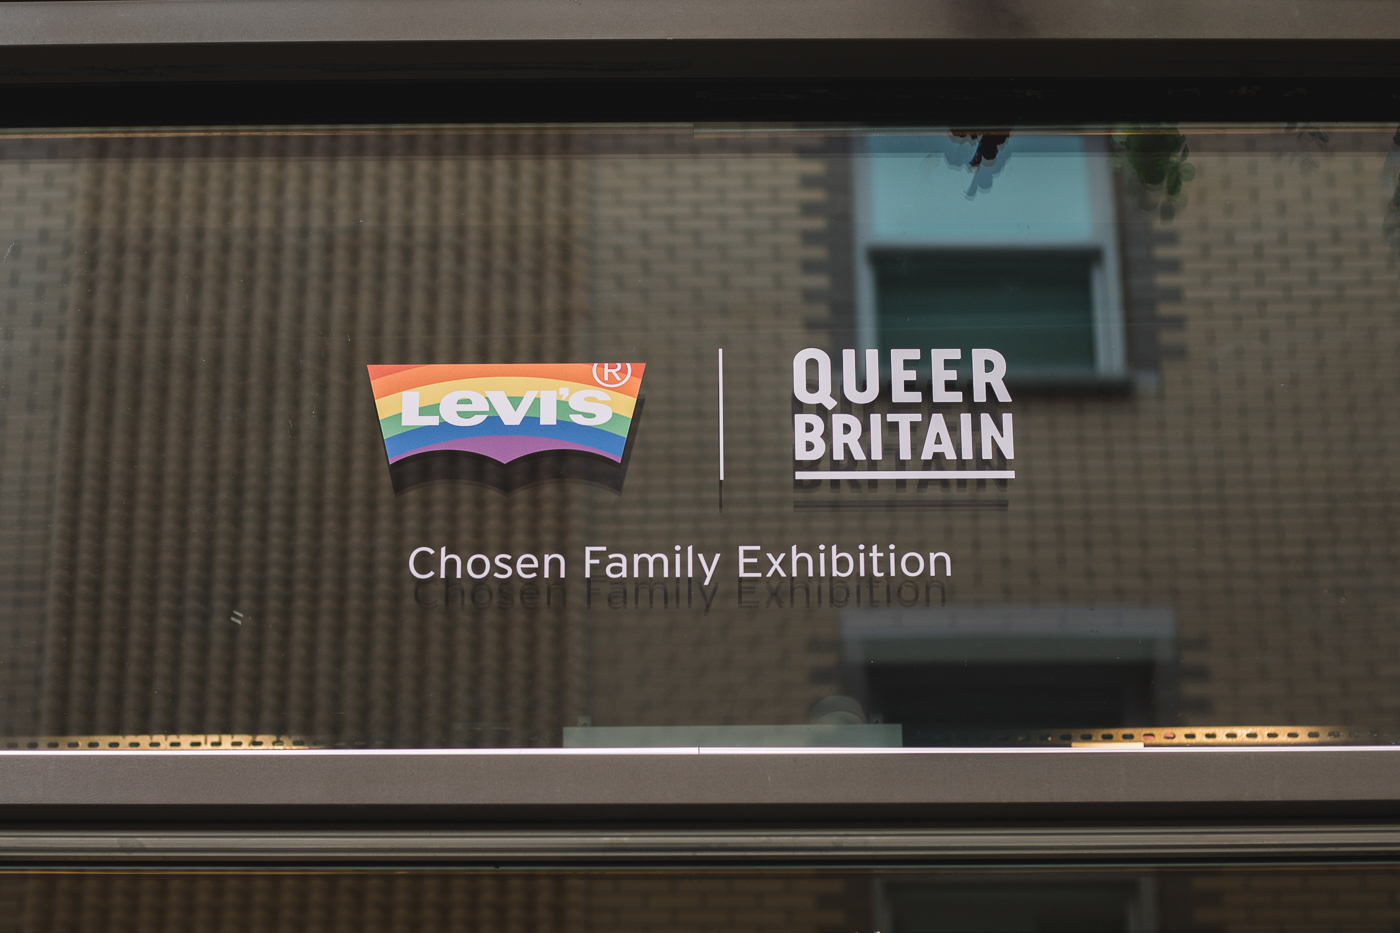 Levis, Queer Britain, pop up, how to build a pop up, London pop up, things to see in London, short-term retail,